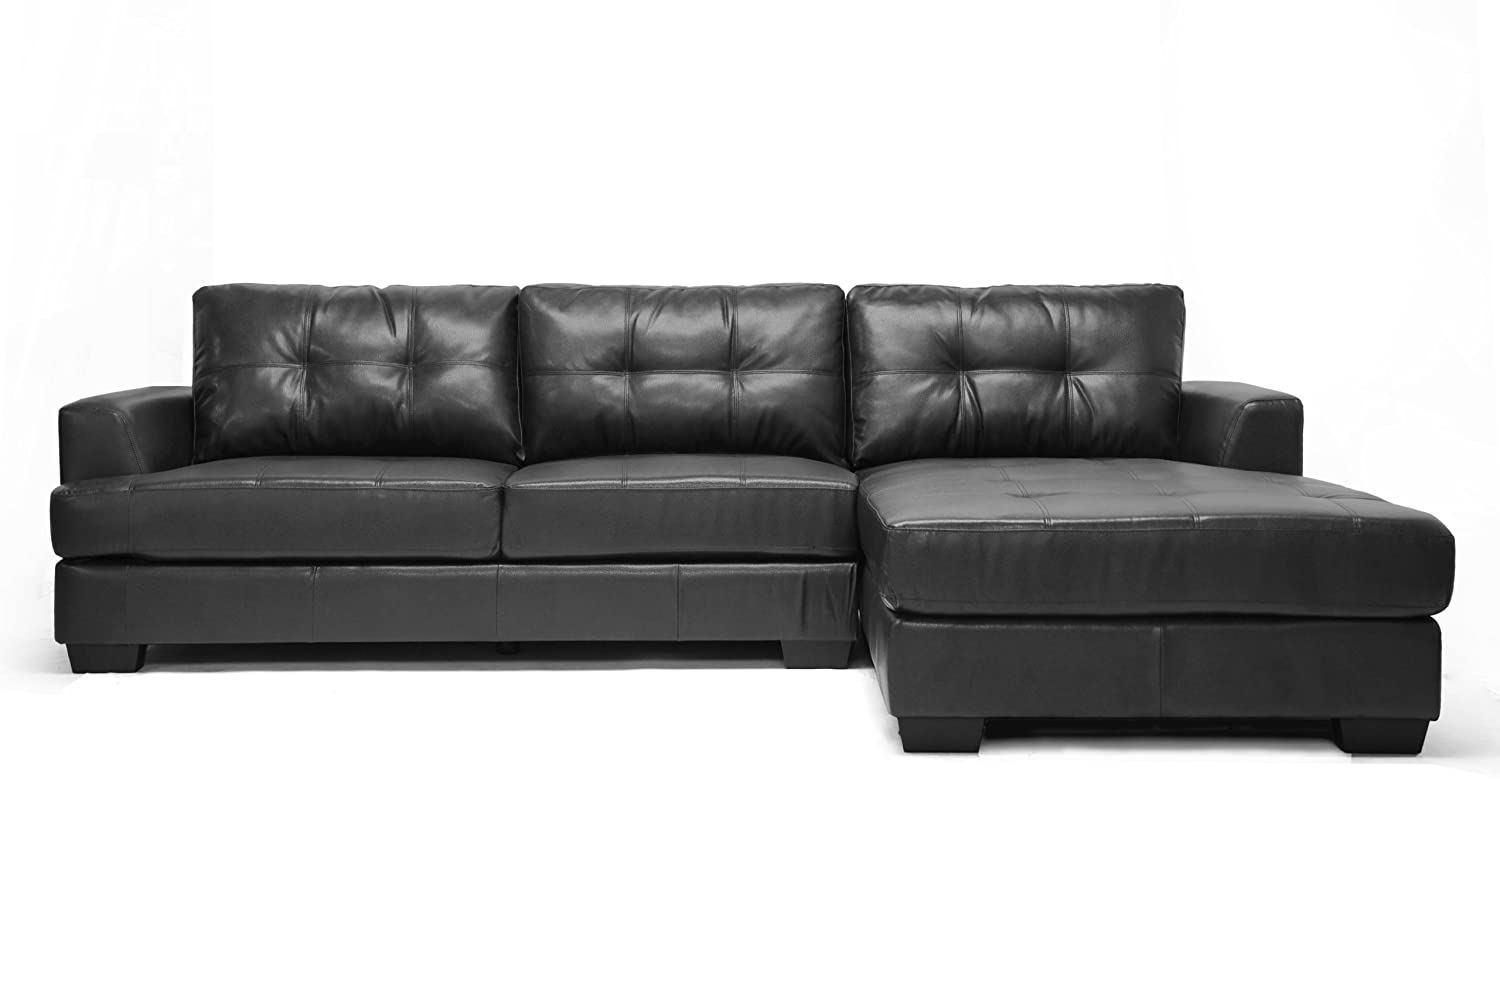 amazoncom baxton studio dobson leather modern sectional sofa blackkitchen  dining. amazoncom baxton studio dobson leather modern sectional sofa